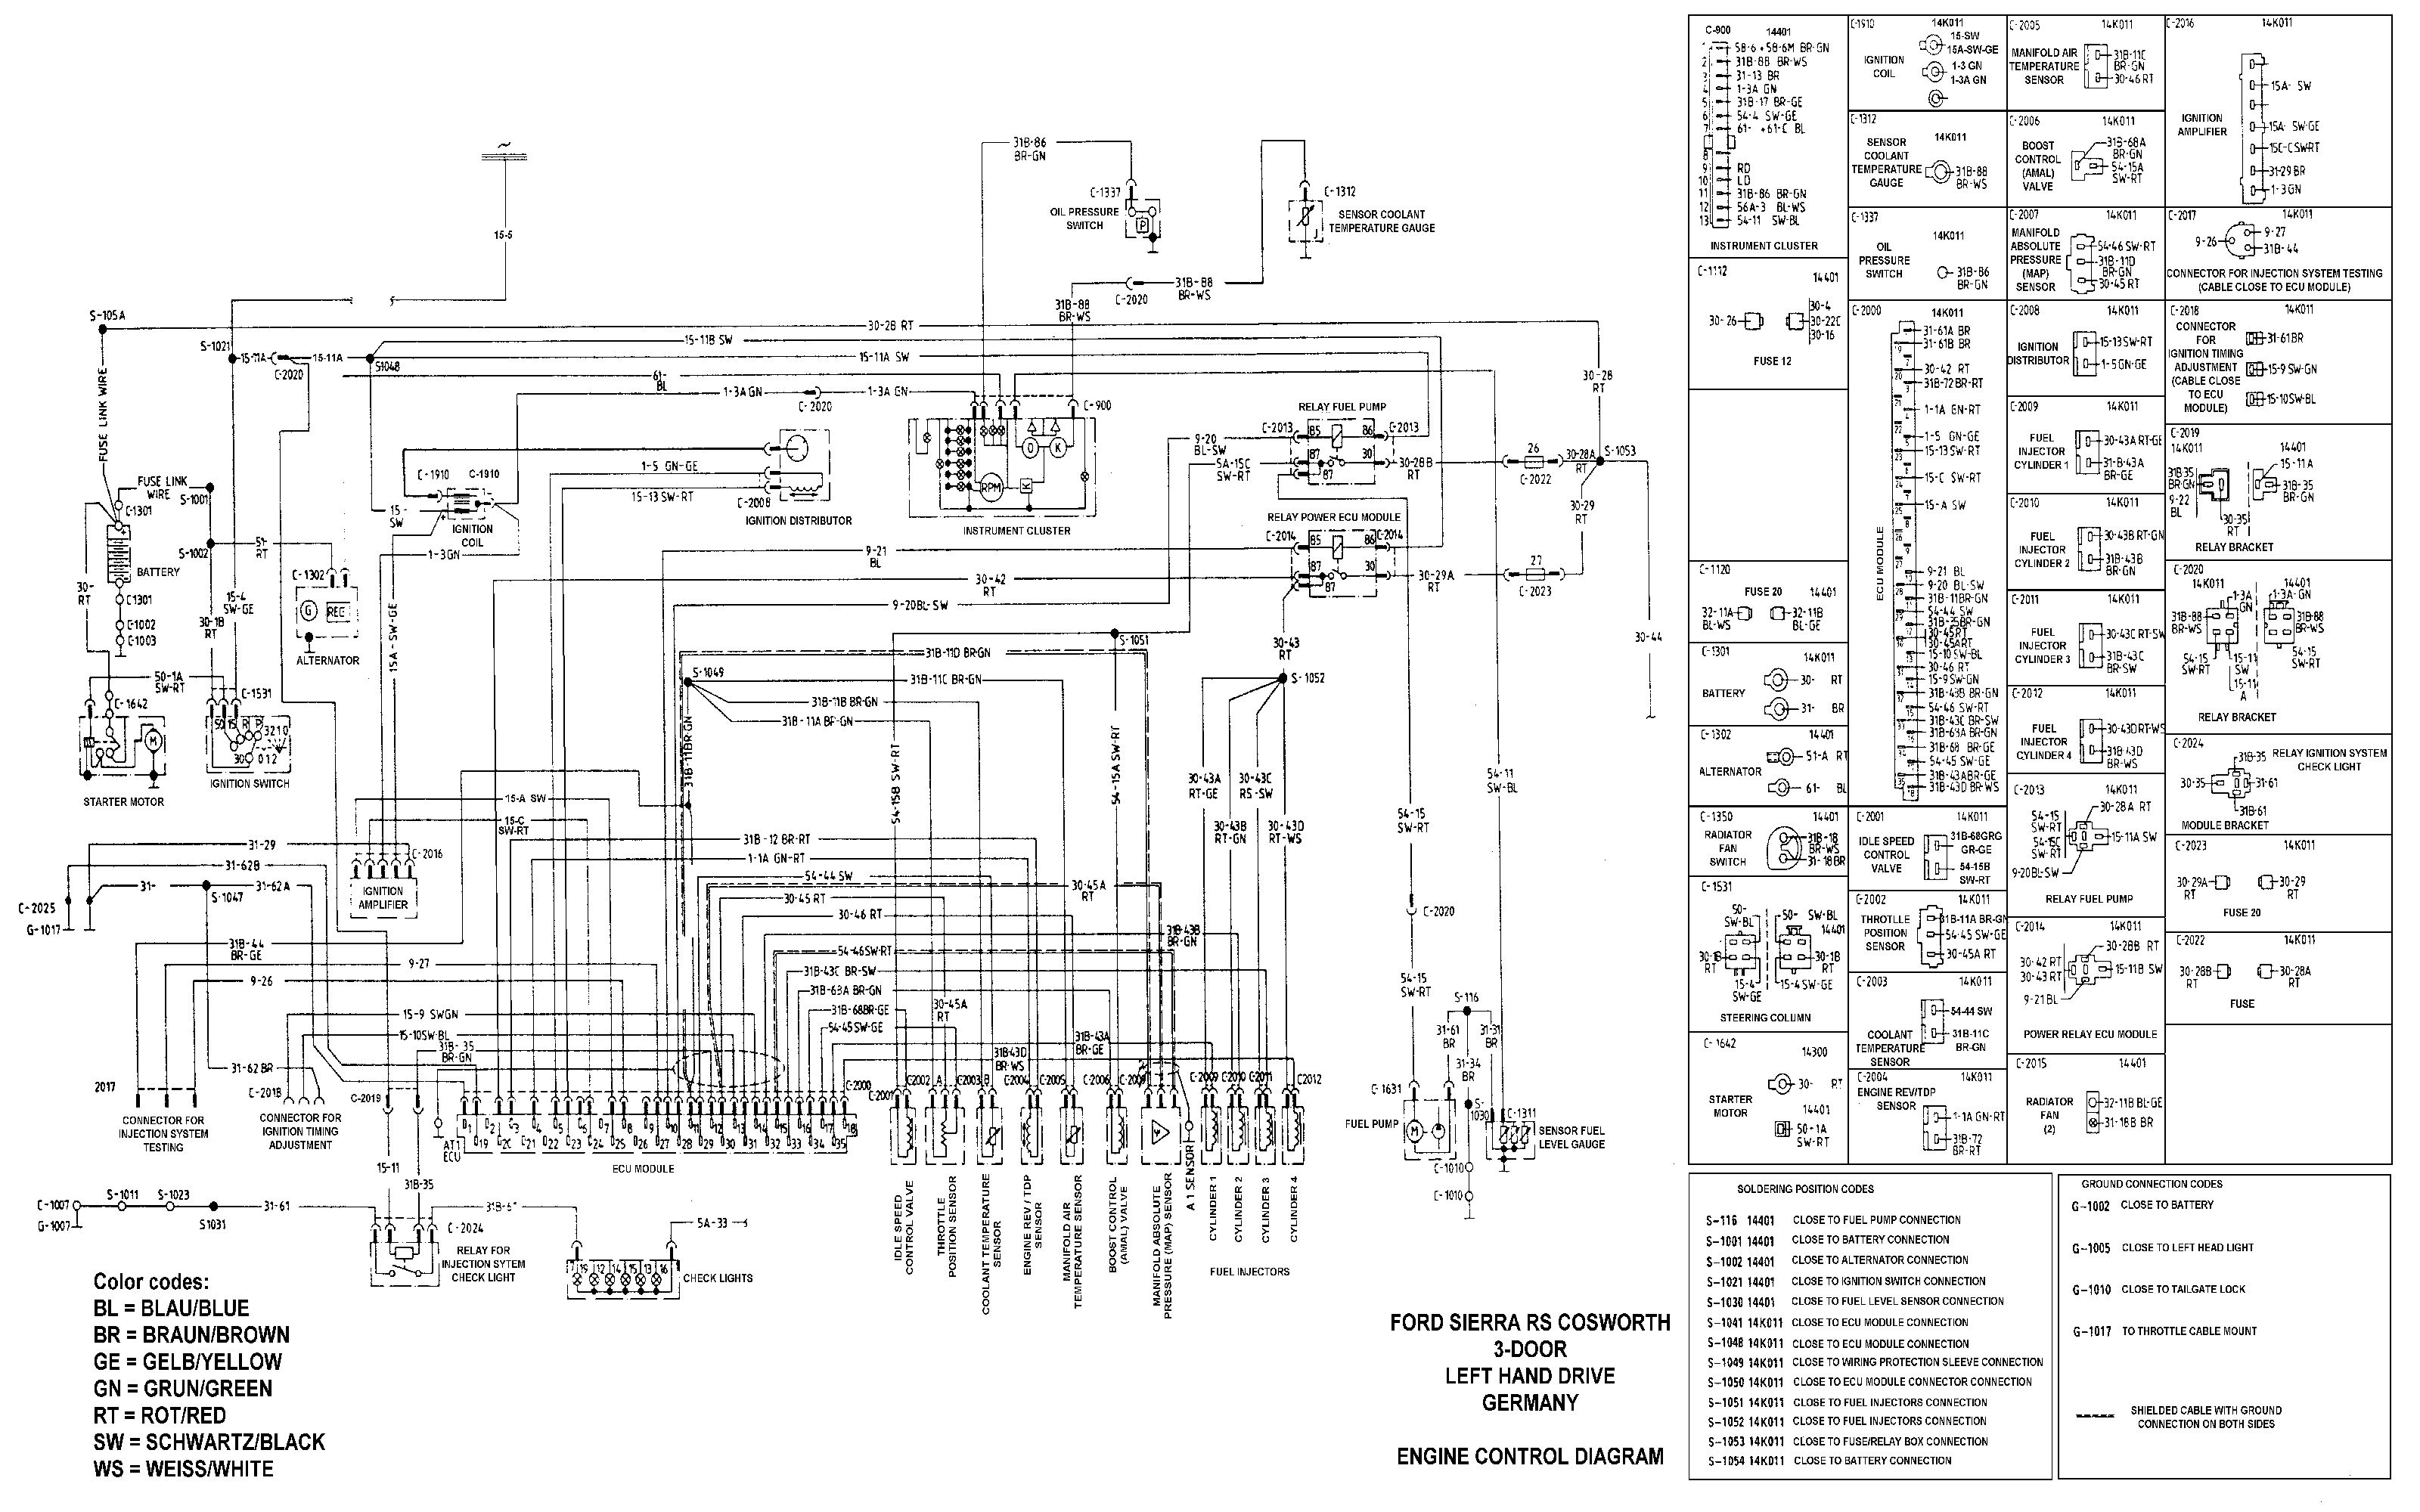 ford mondeo engine diagram my wiring diagram 2004 ford focus stereo wiring diagram 2004 ford focus stereo wiring diagram 2004 ford focus stereo wiring diagram 2004 ford focus stereo wiring diagram